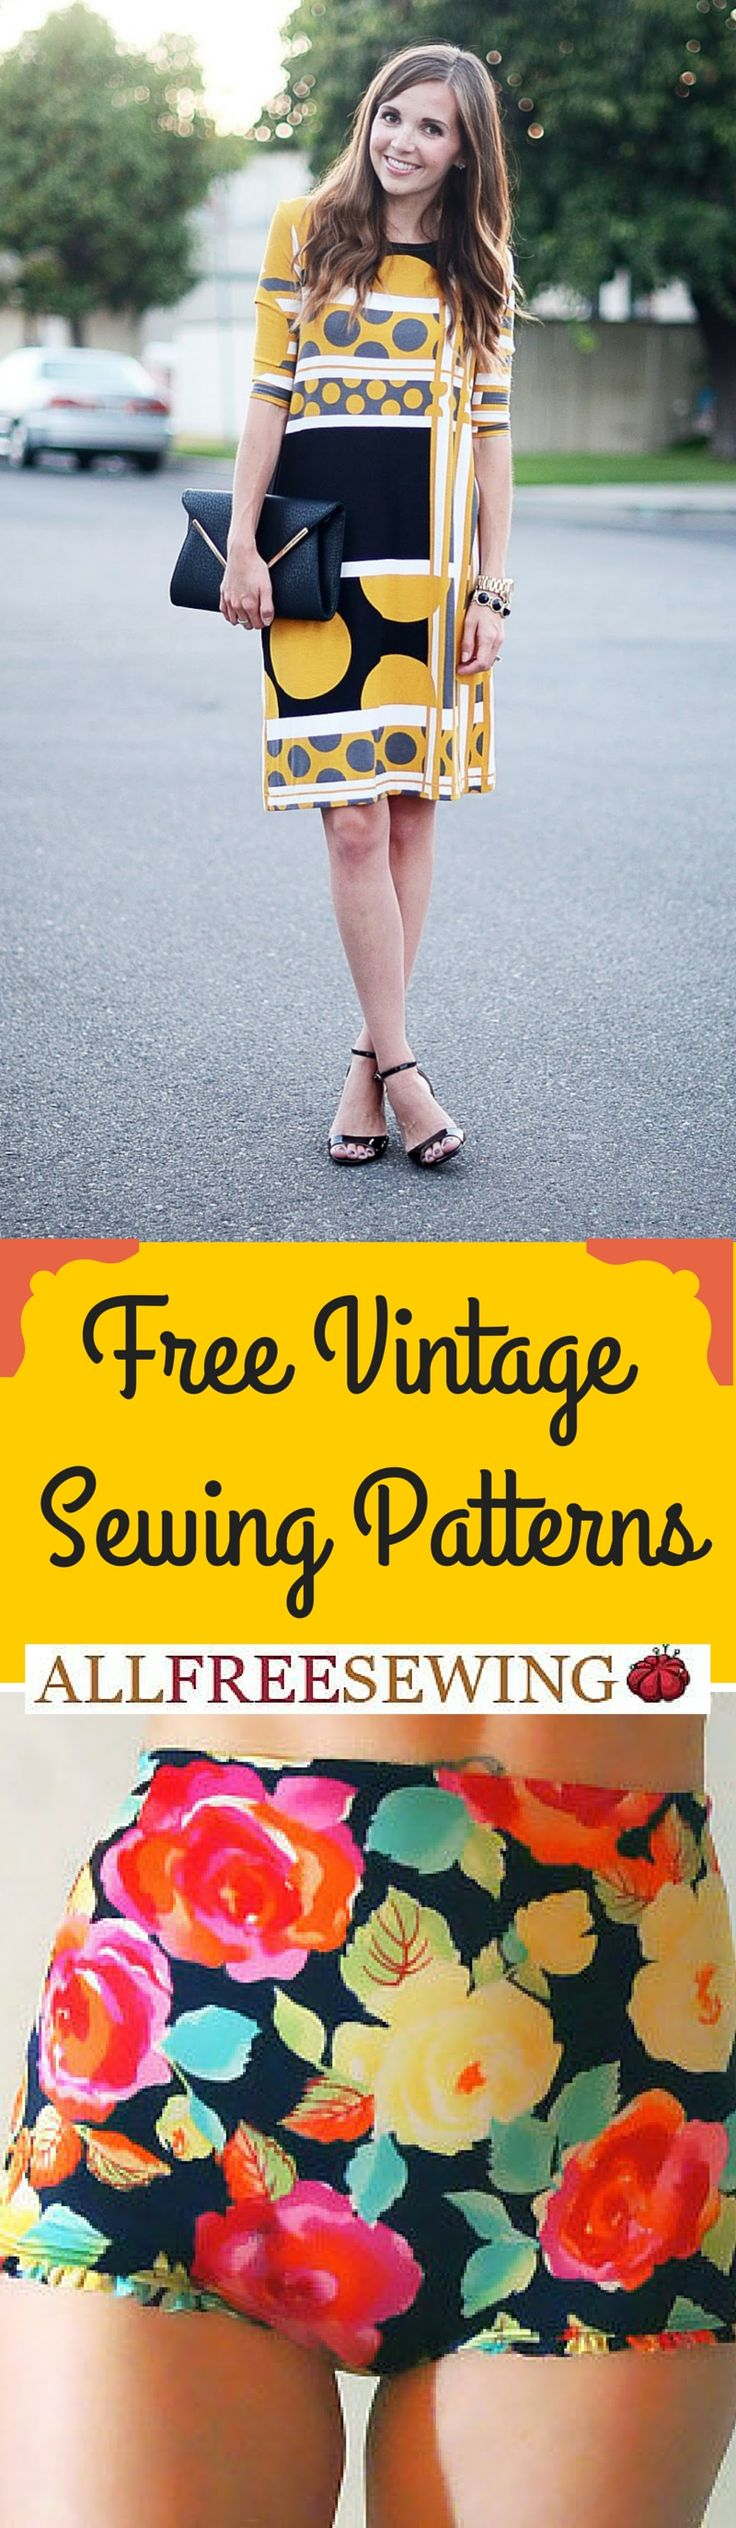 Free vintage sewing patterns. Sew your own clothing inspired by vintage styles and patterns. These classic sewing patterns are so pretty!